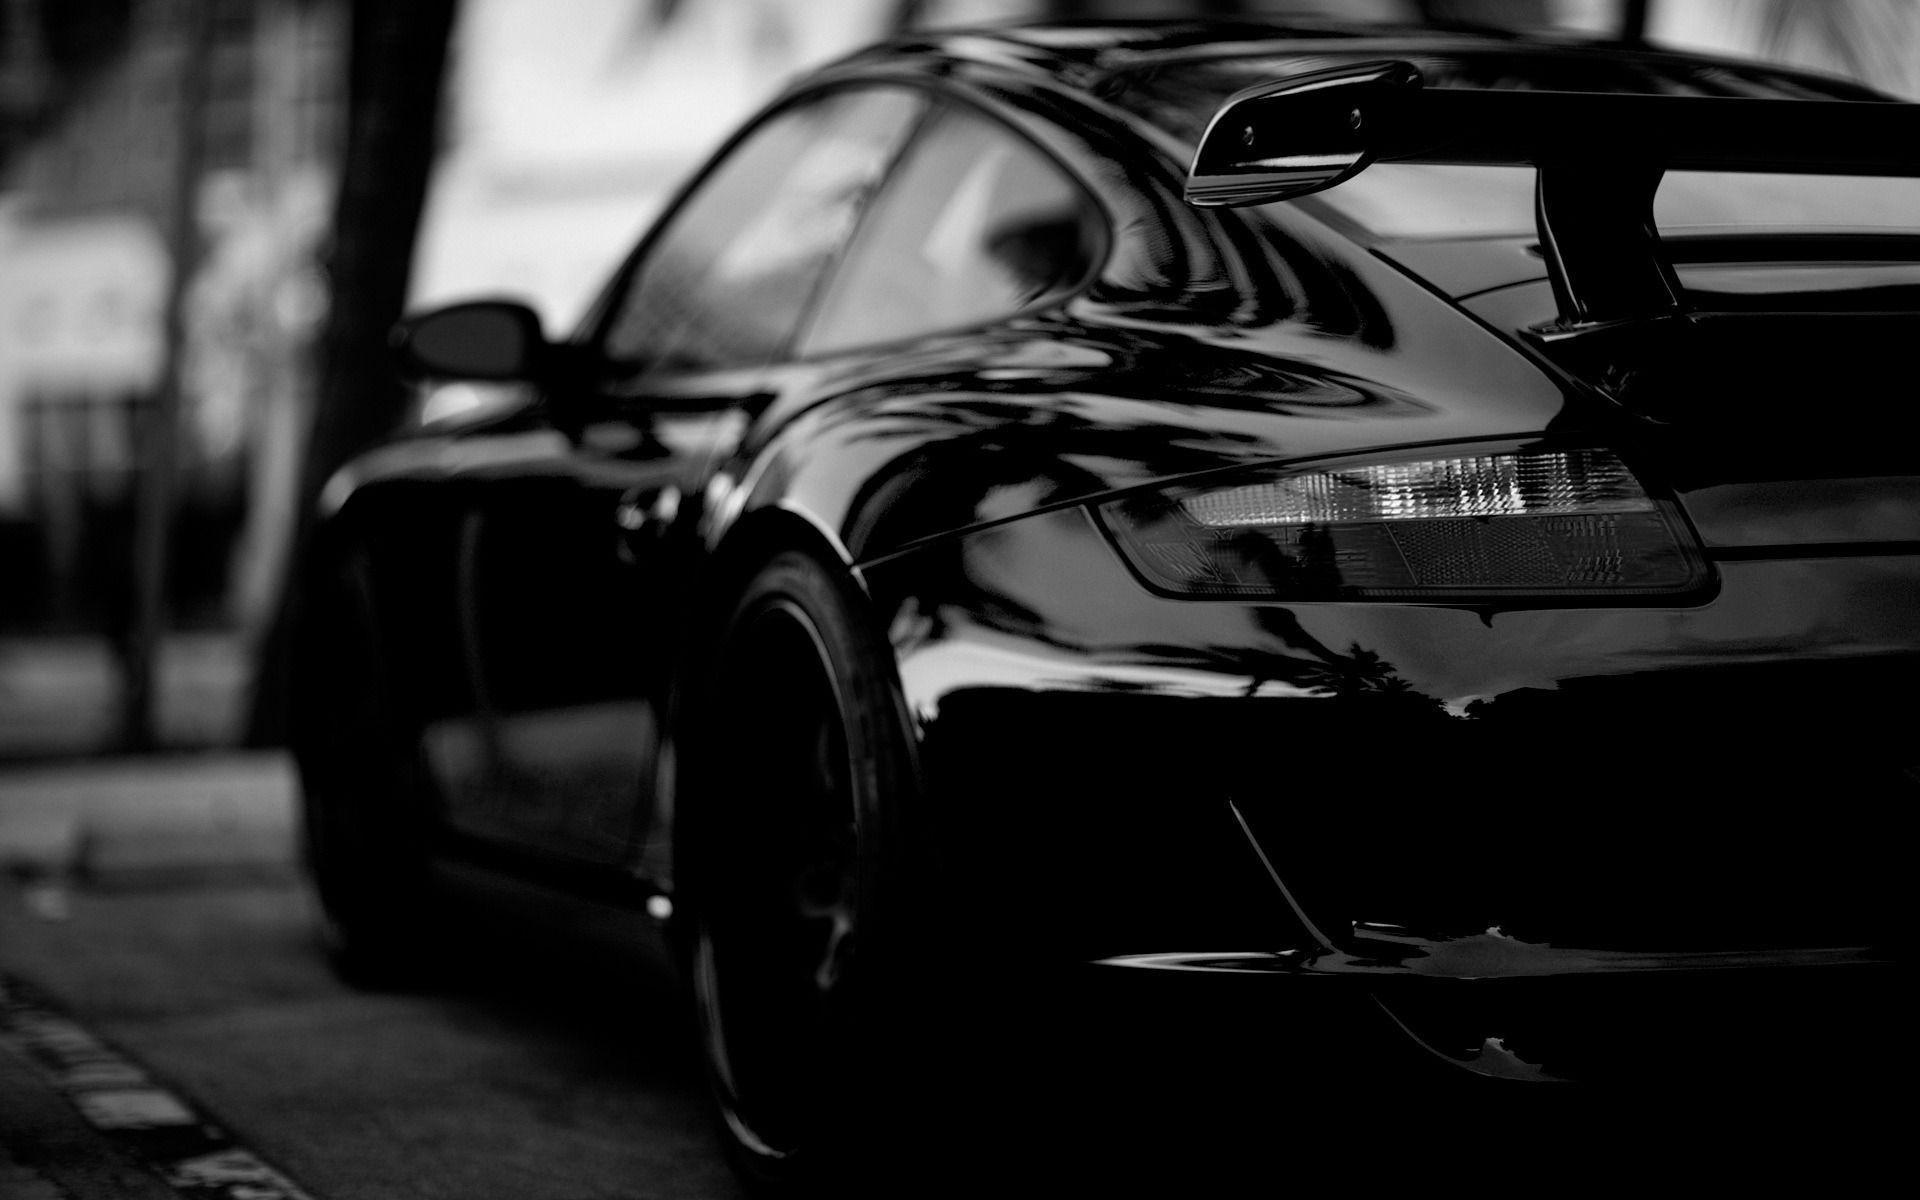 Black Car Wallpapers Wallpaper Cave